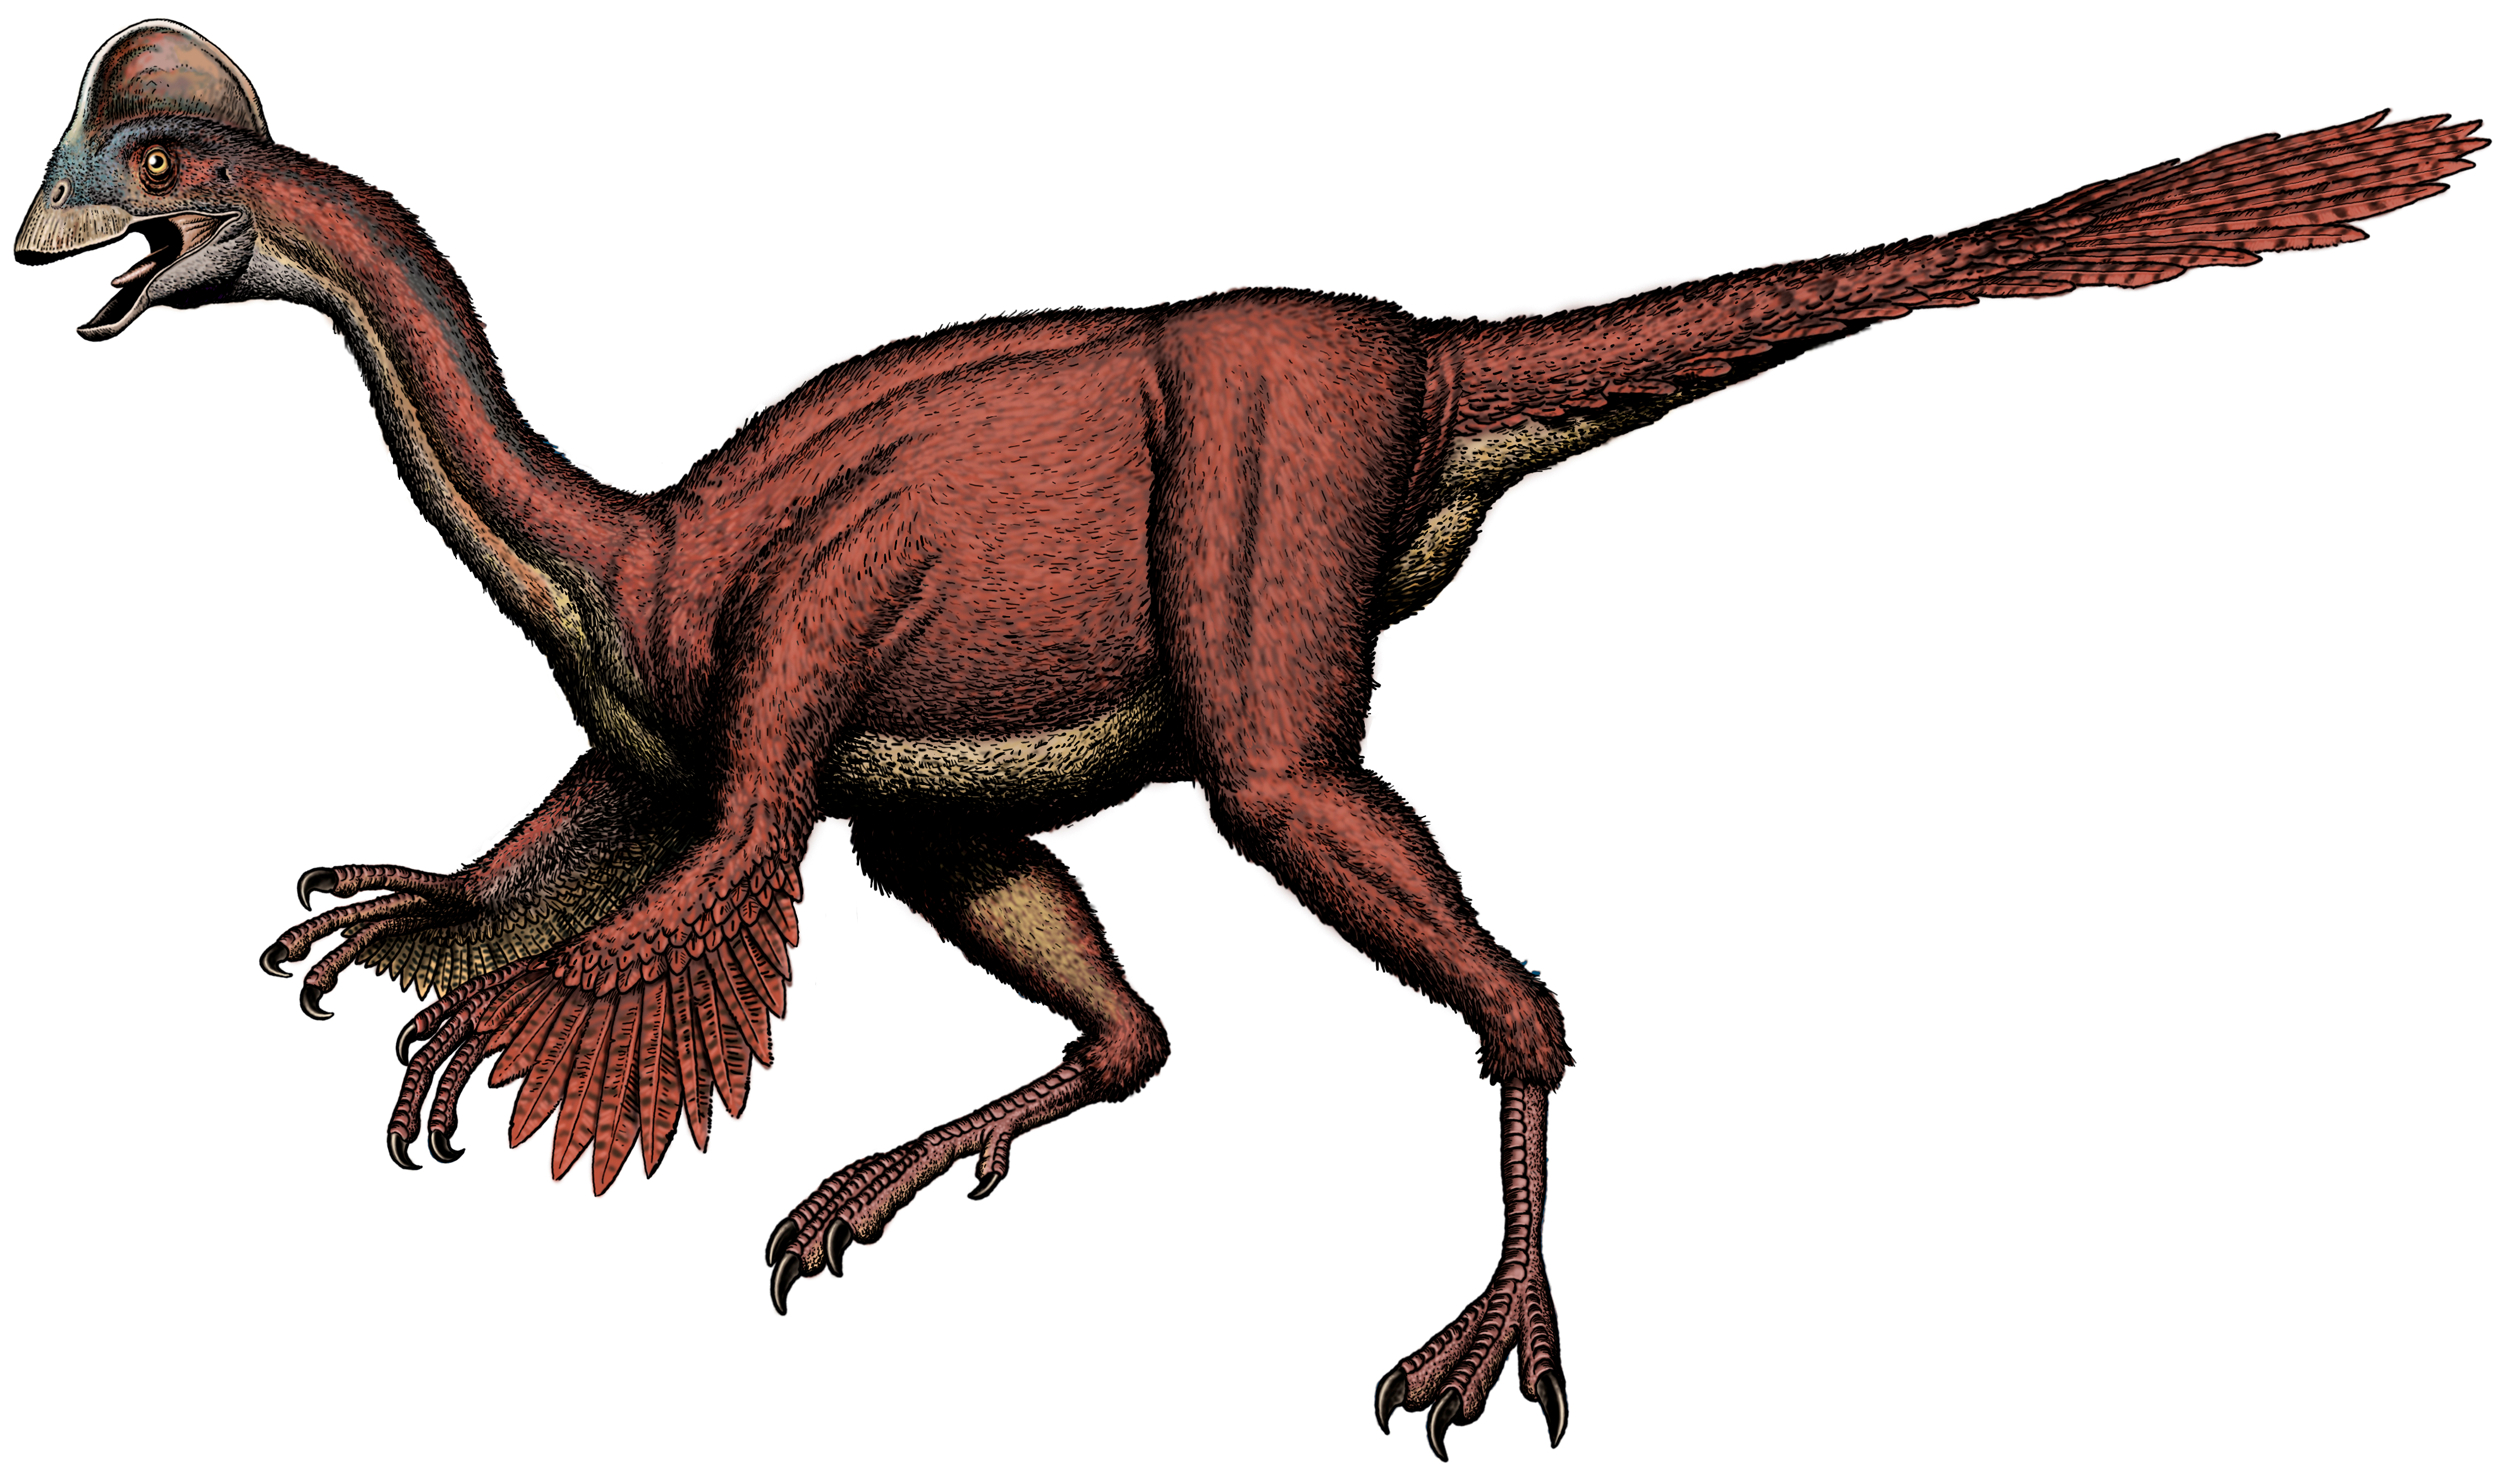 It's easy to see why Anzu wyliei was described as a bird-like dinosaur in this artist's depiction based on a scientific study of the three partially complete fossil skeletons: it resembled an ostrich with its feathered body, toothless bill, long slender neck and powerful hind legs. But it also had a crested skull, a tail, and claws at the ends of its forearms. Image courtesy of Robert Walters, Smithsonian Institution.